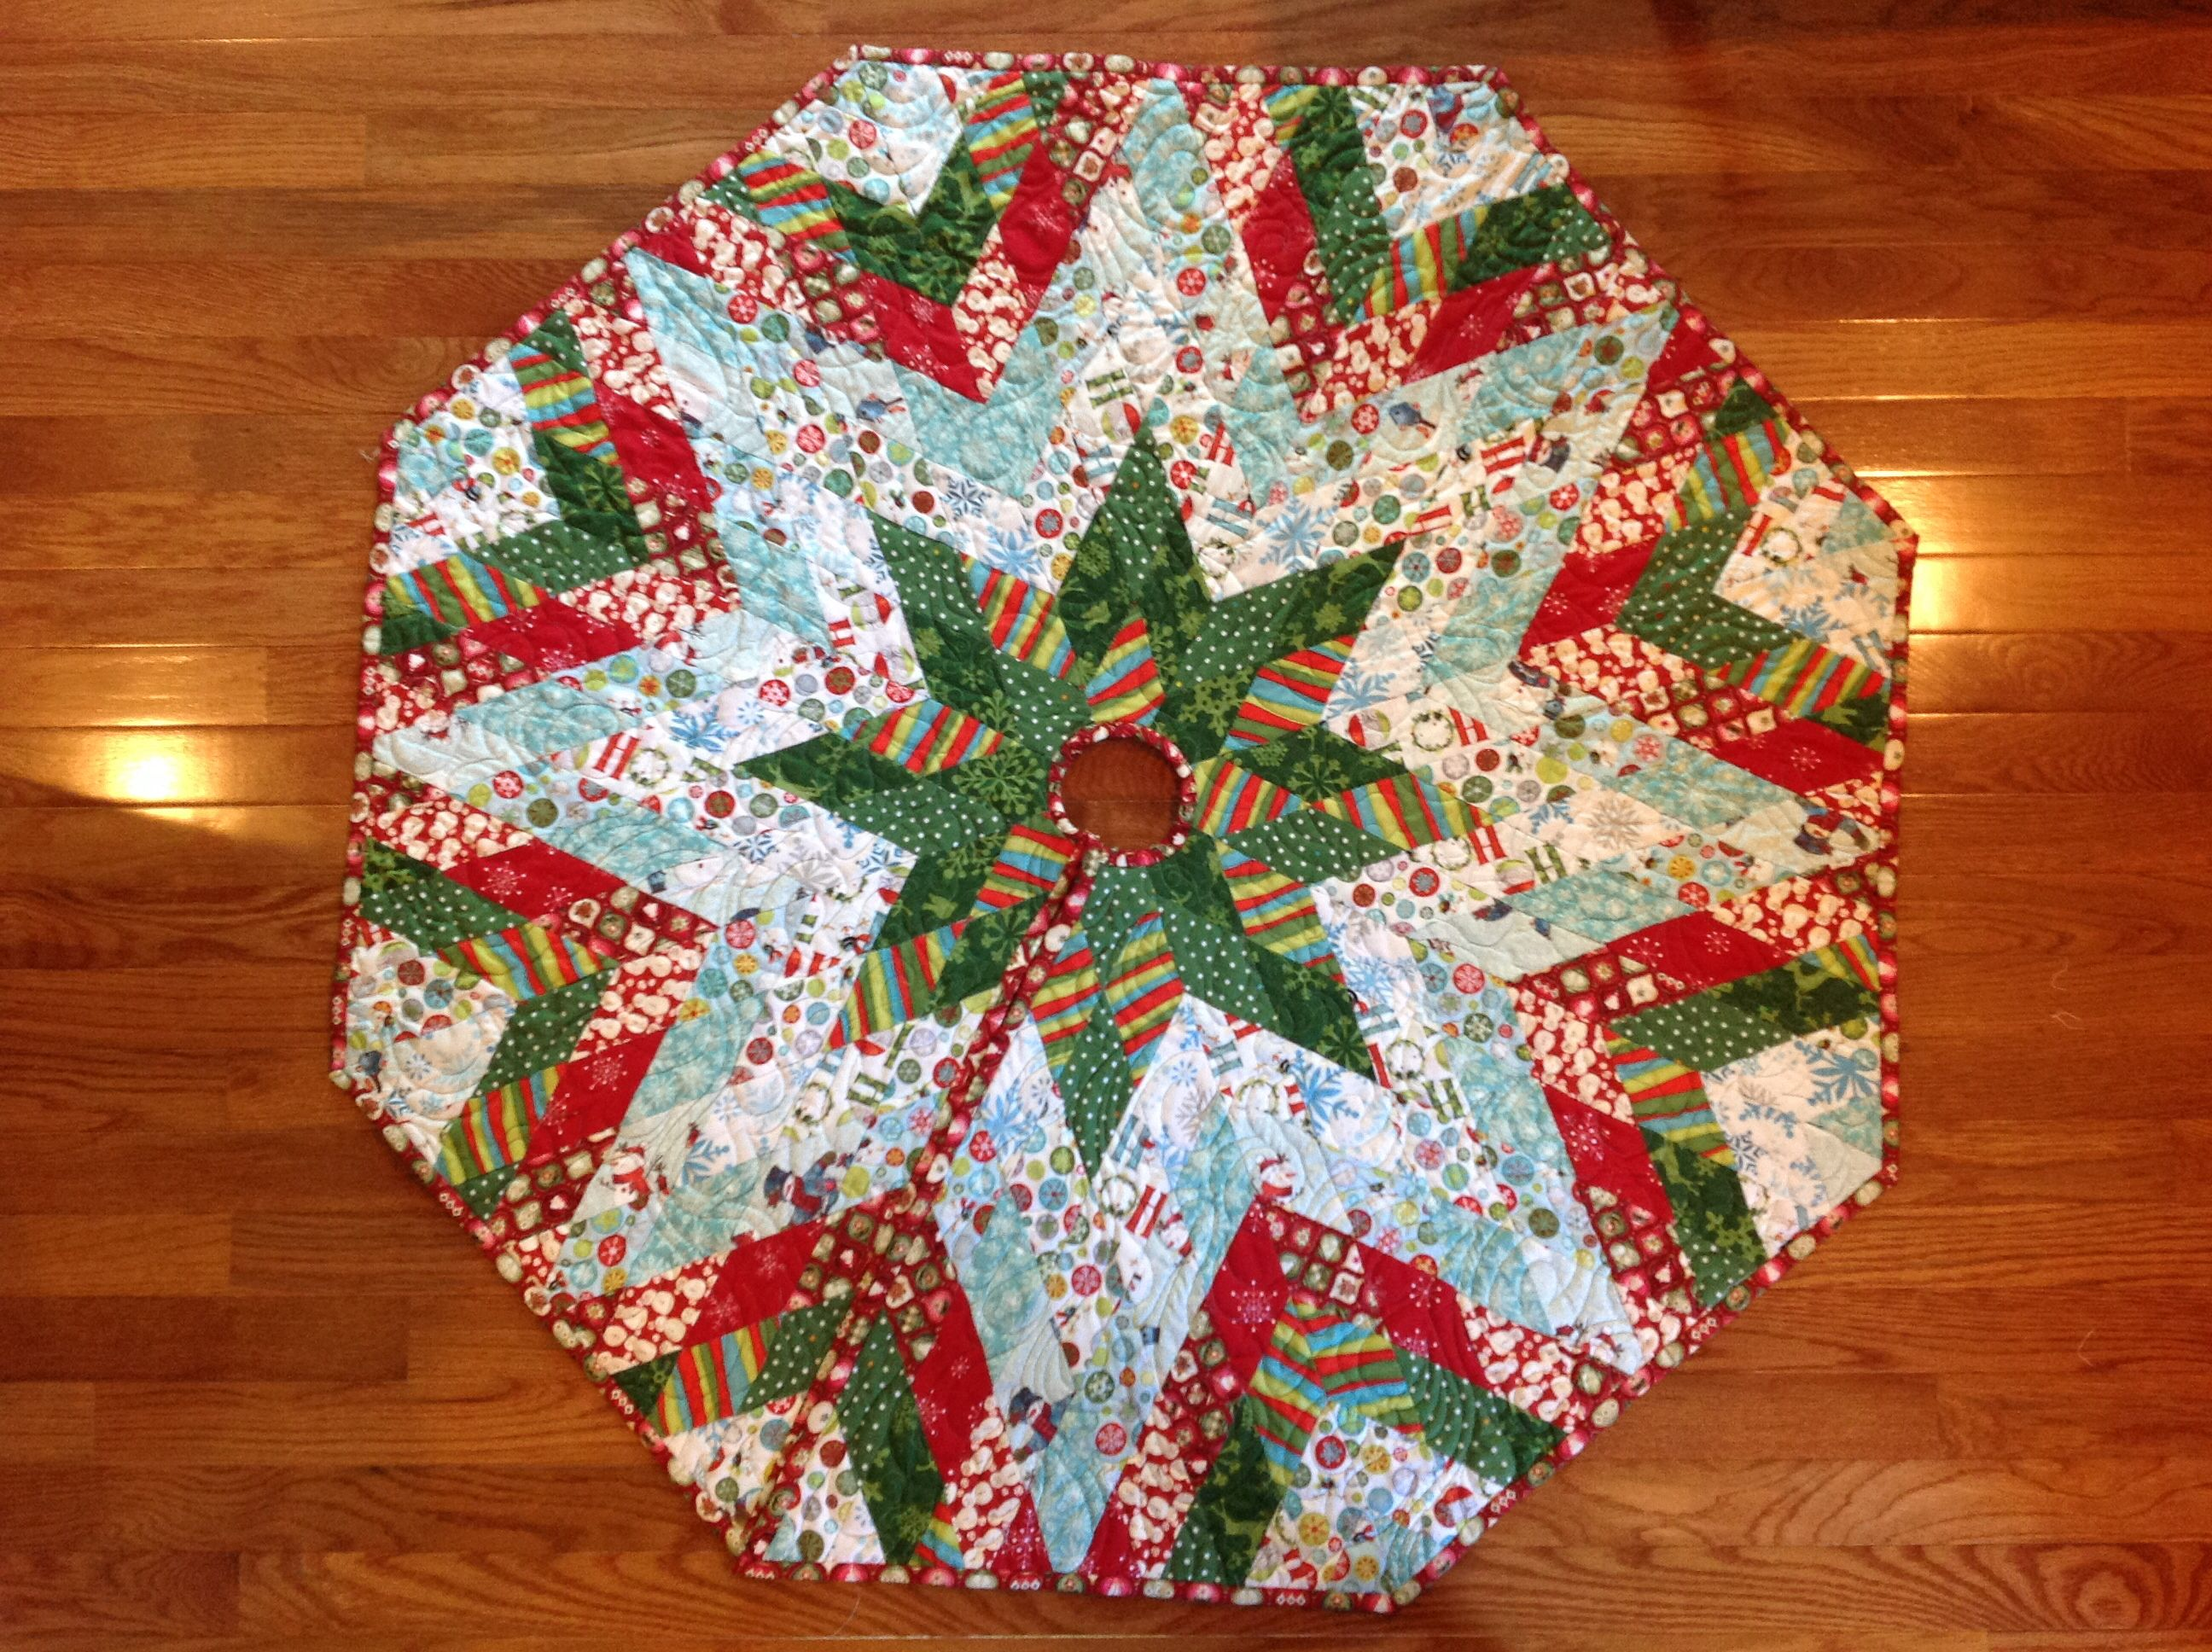 Christmas Tree Skirt Made By English Paper Piecing. I Used